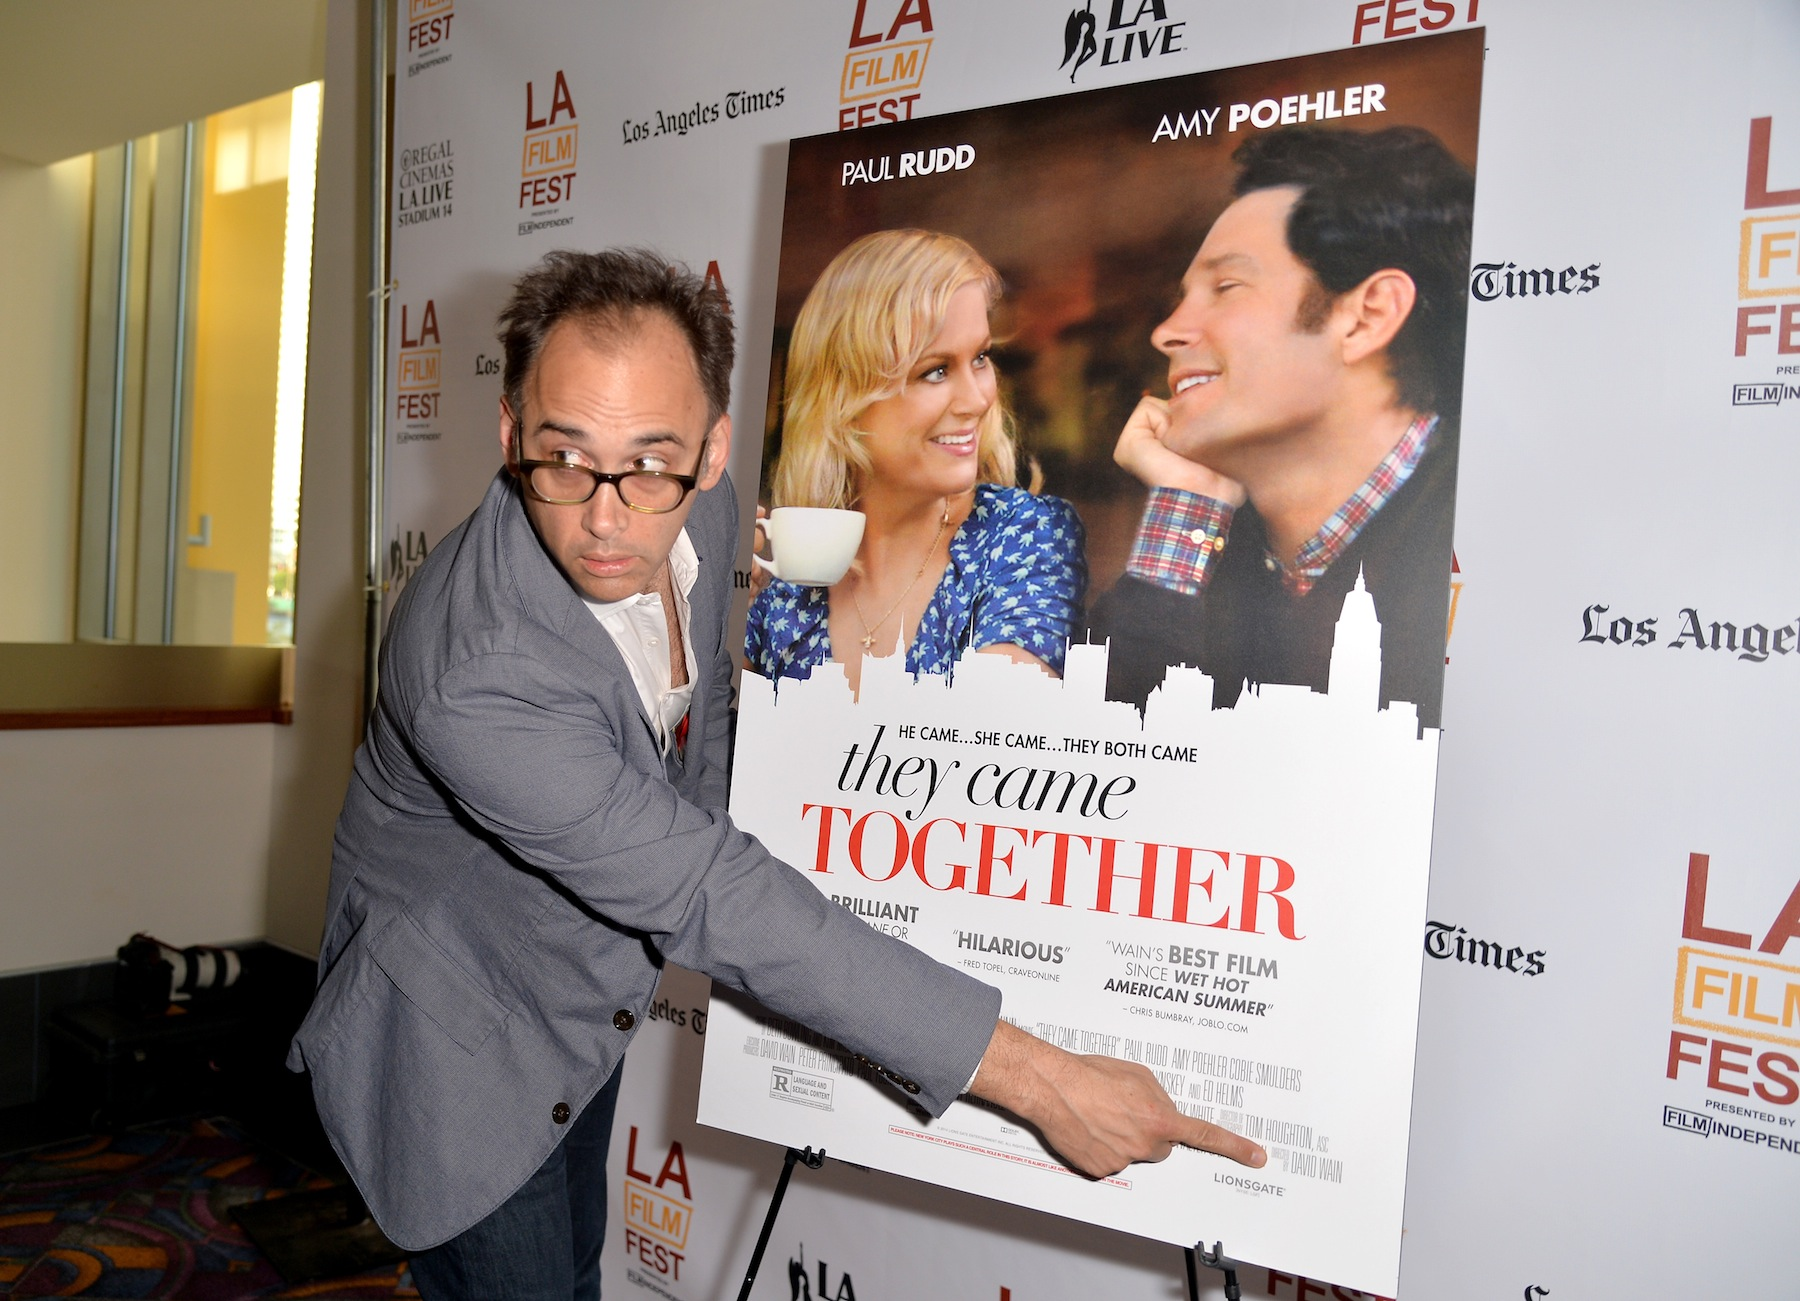 David Wain attends the premiere of  They Came Together  during the 2014 Los Angeles Film Festival on June 16, 2014 in Los Angeles